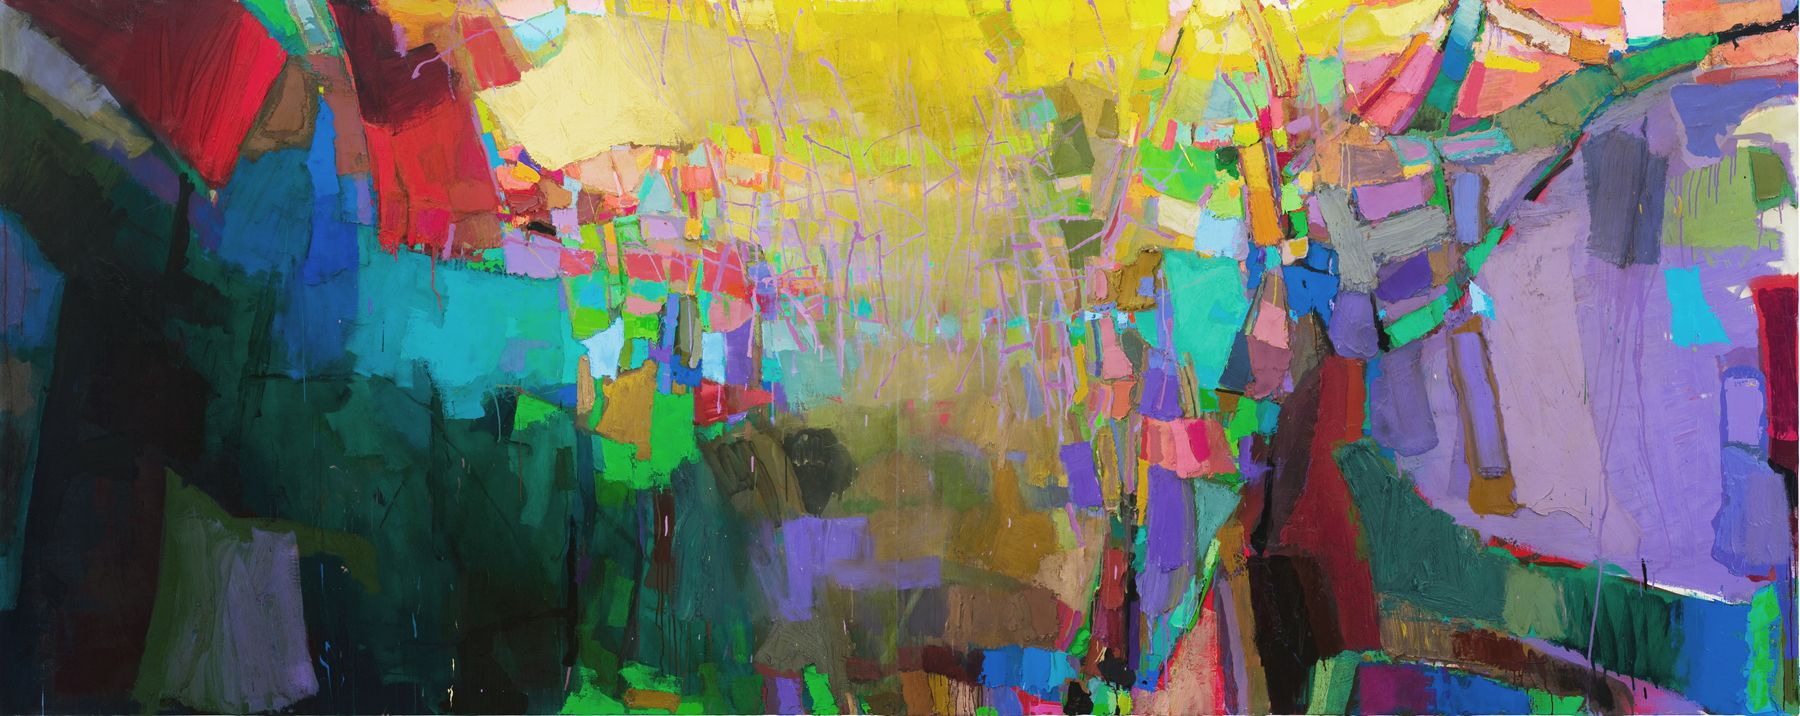 Brian Rutenberg Low Dense (SOLD), 2010, oil on linen, 63 x 158 inches